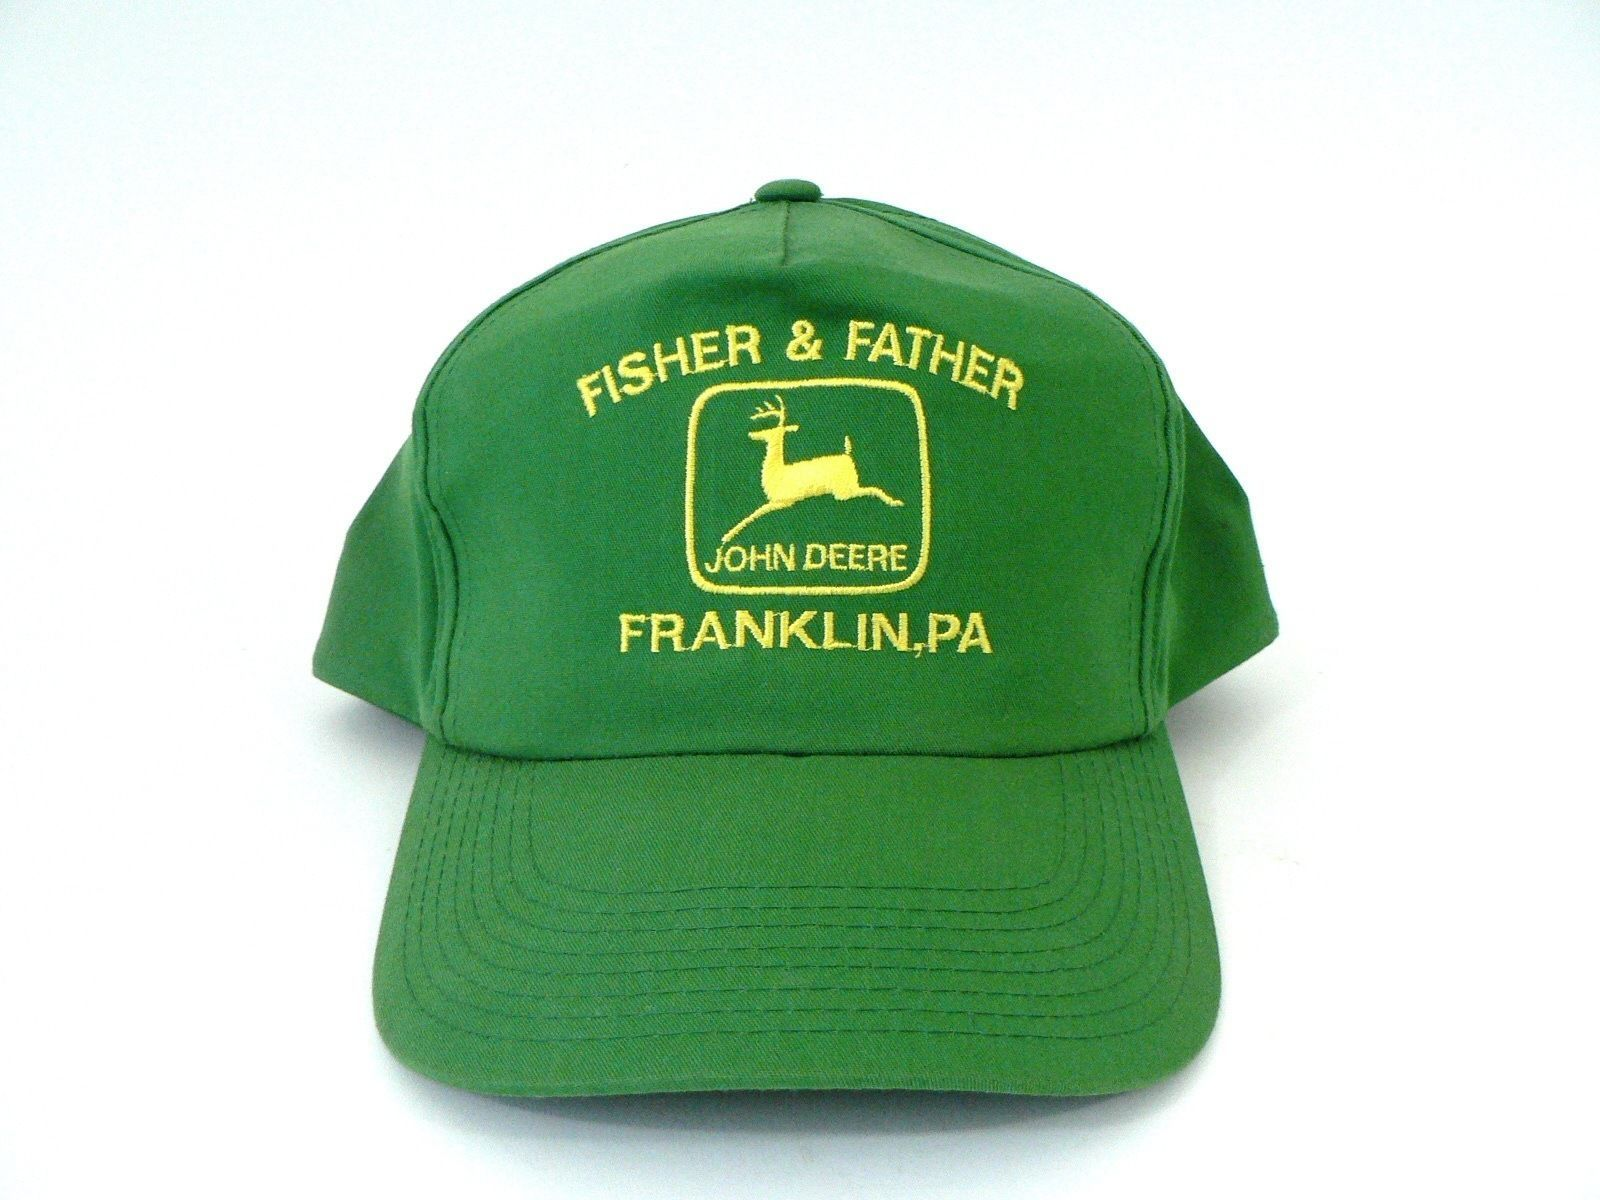 55a3e37806e1b S l1600. S l1600. Previous. VTG Green Yellow John Deere Snapback Baseball  Hat Cap Fisher Father Franklin PA